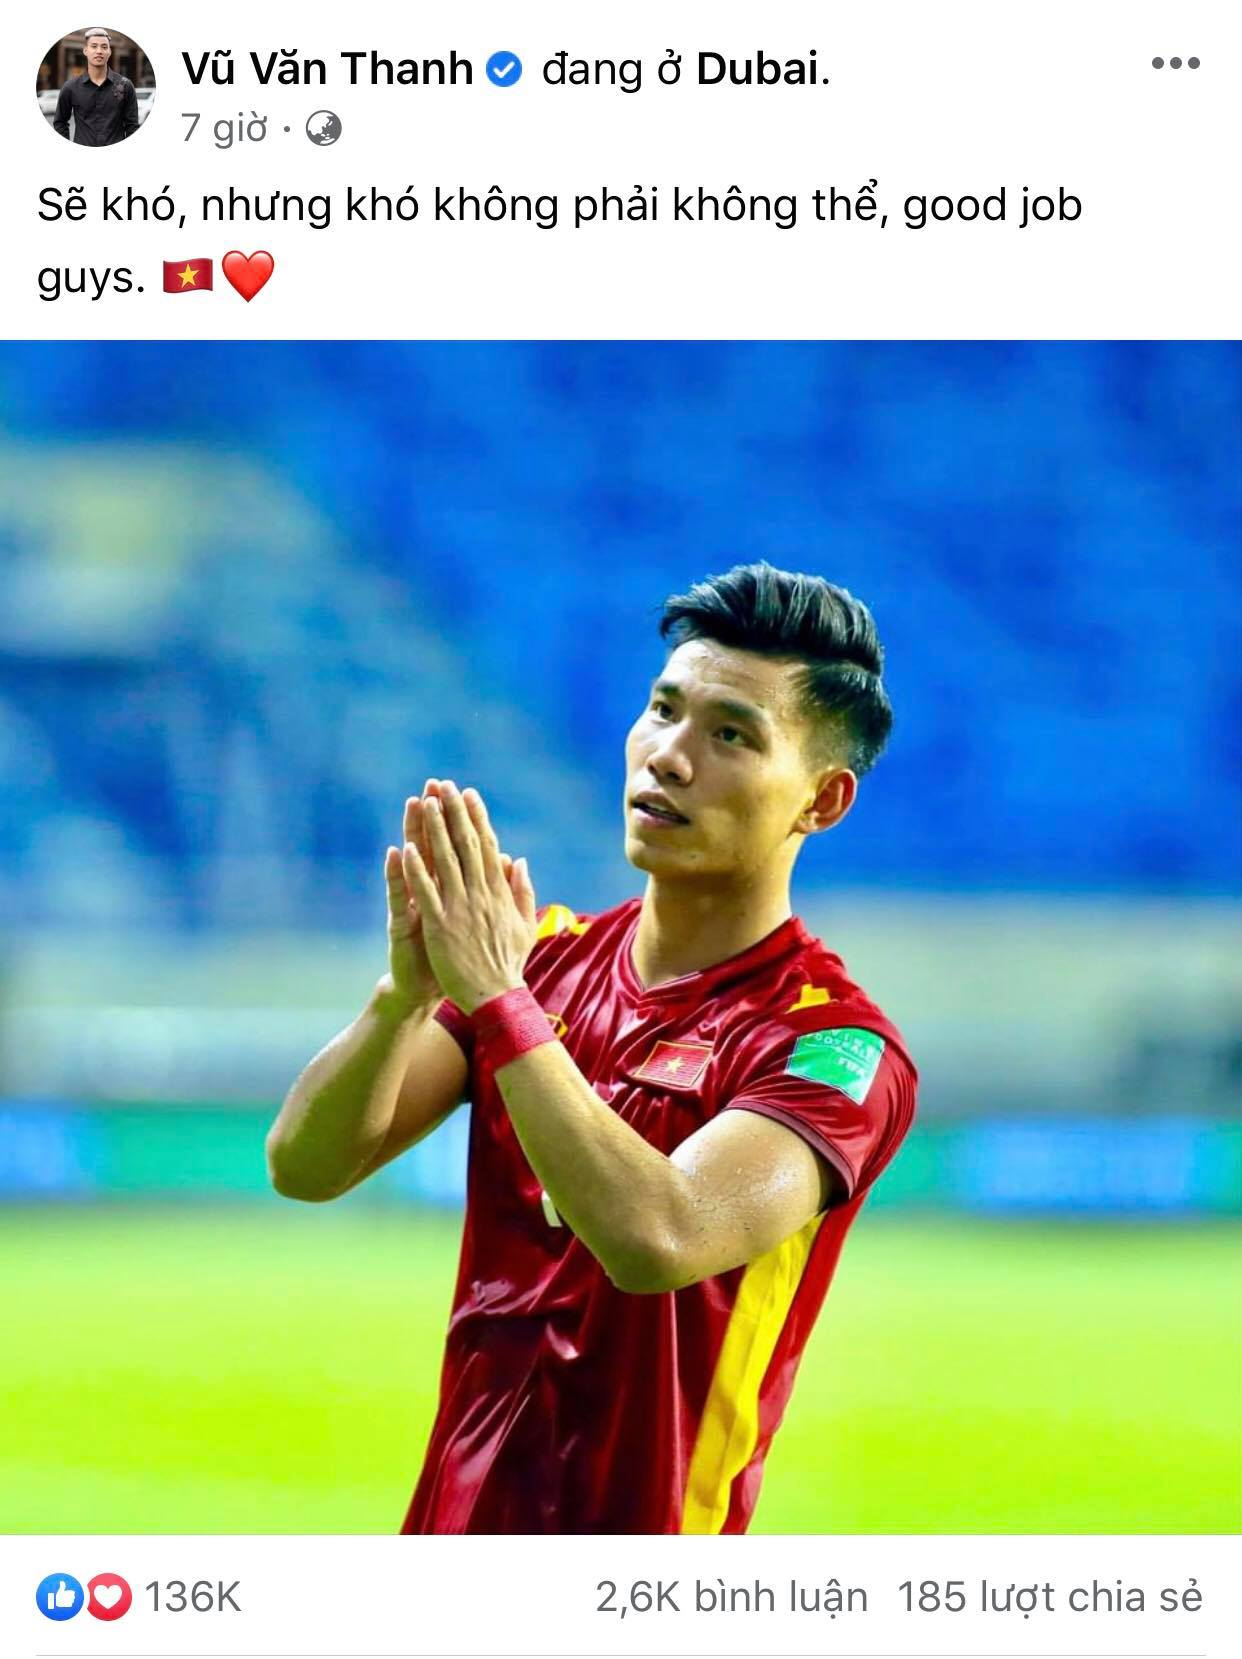 Vu Van Thanh said that the third qualifying round will be difficult but not impossible.